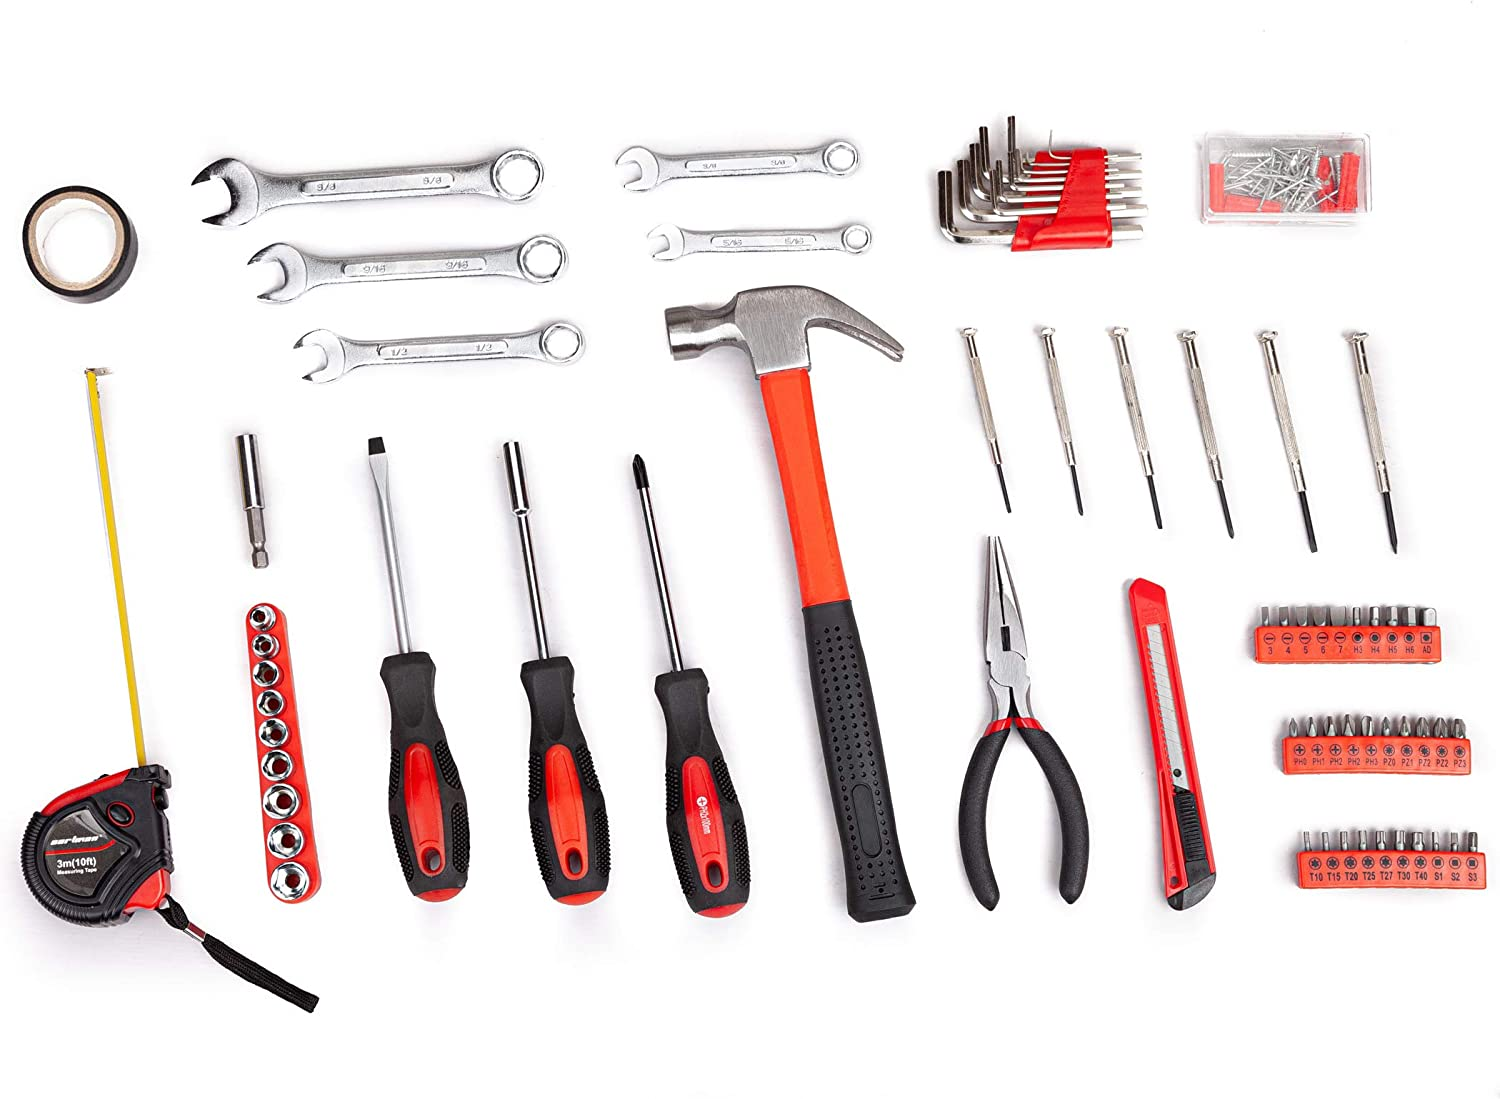 Essential Hand Tools 26 Essential Tools to Renovate and Repair Your Home